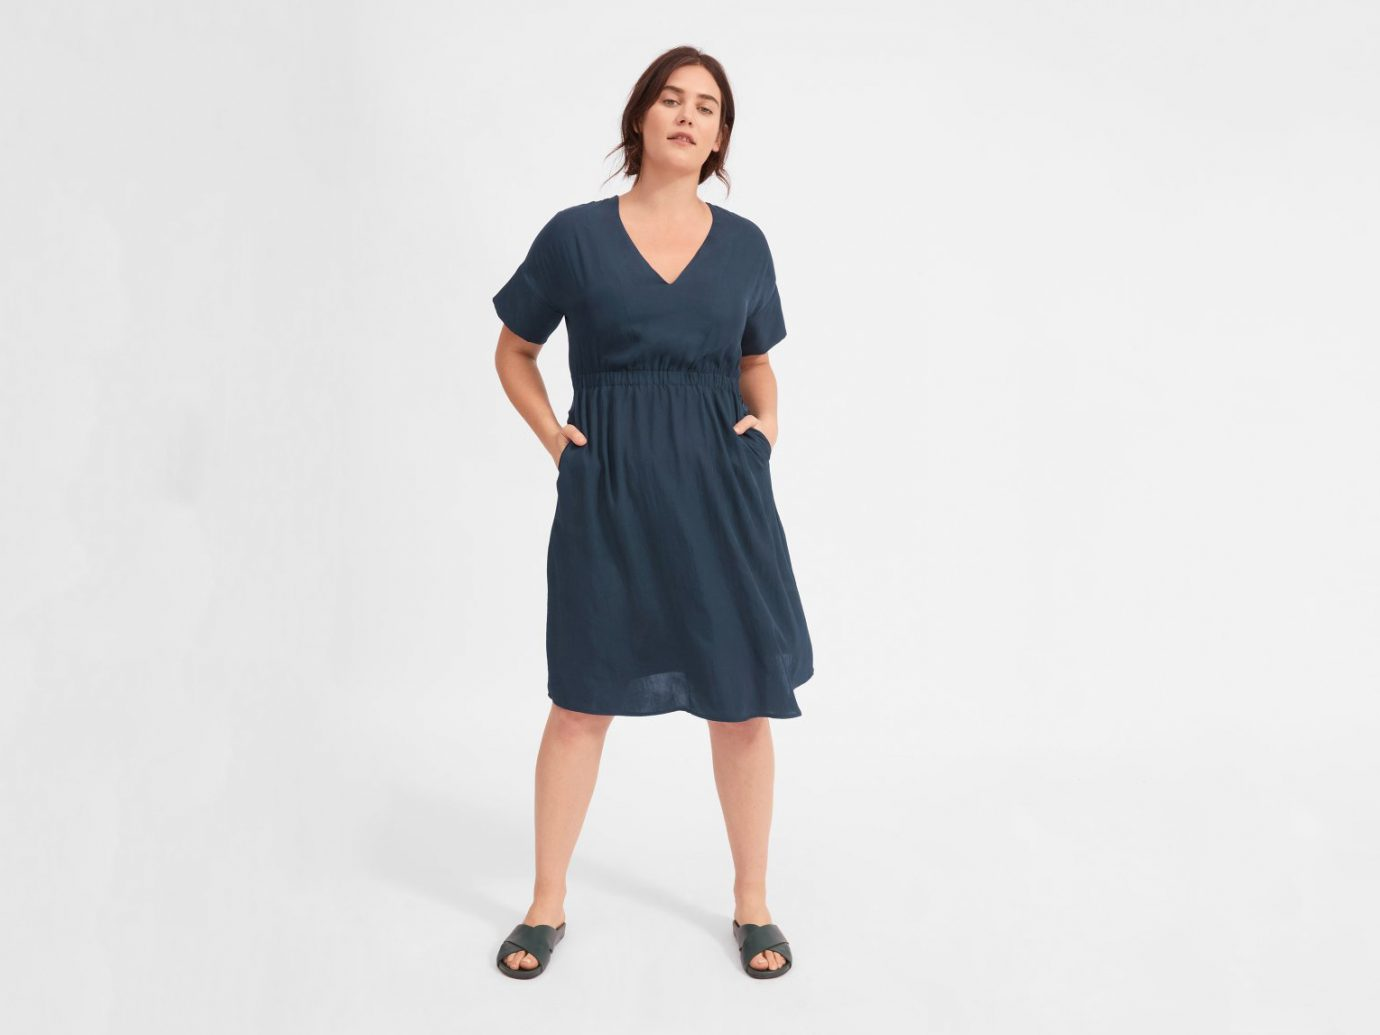 Wrinkle-resistant dress for travel: Everlane The Japanese GoWeave Light V-Neck Dress